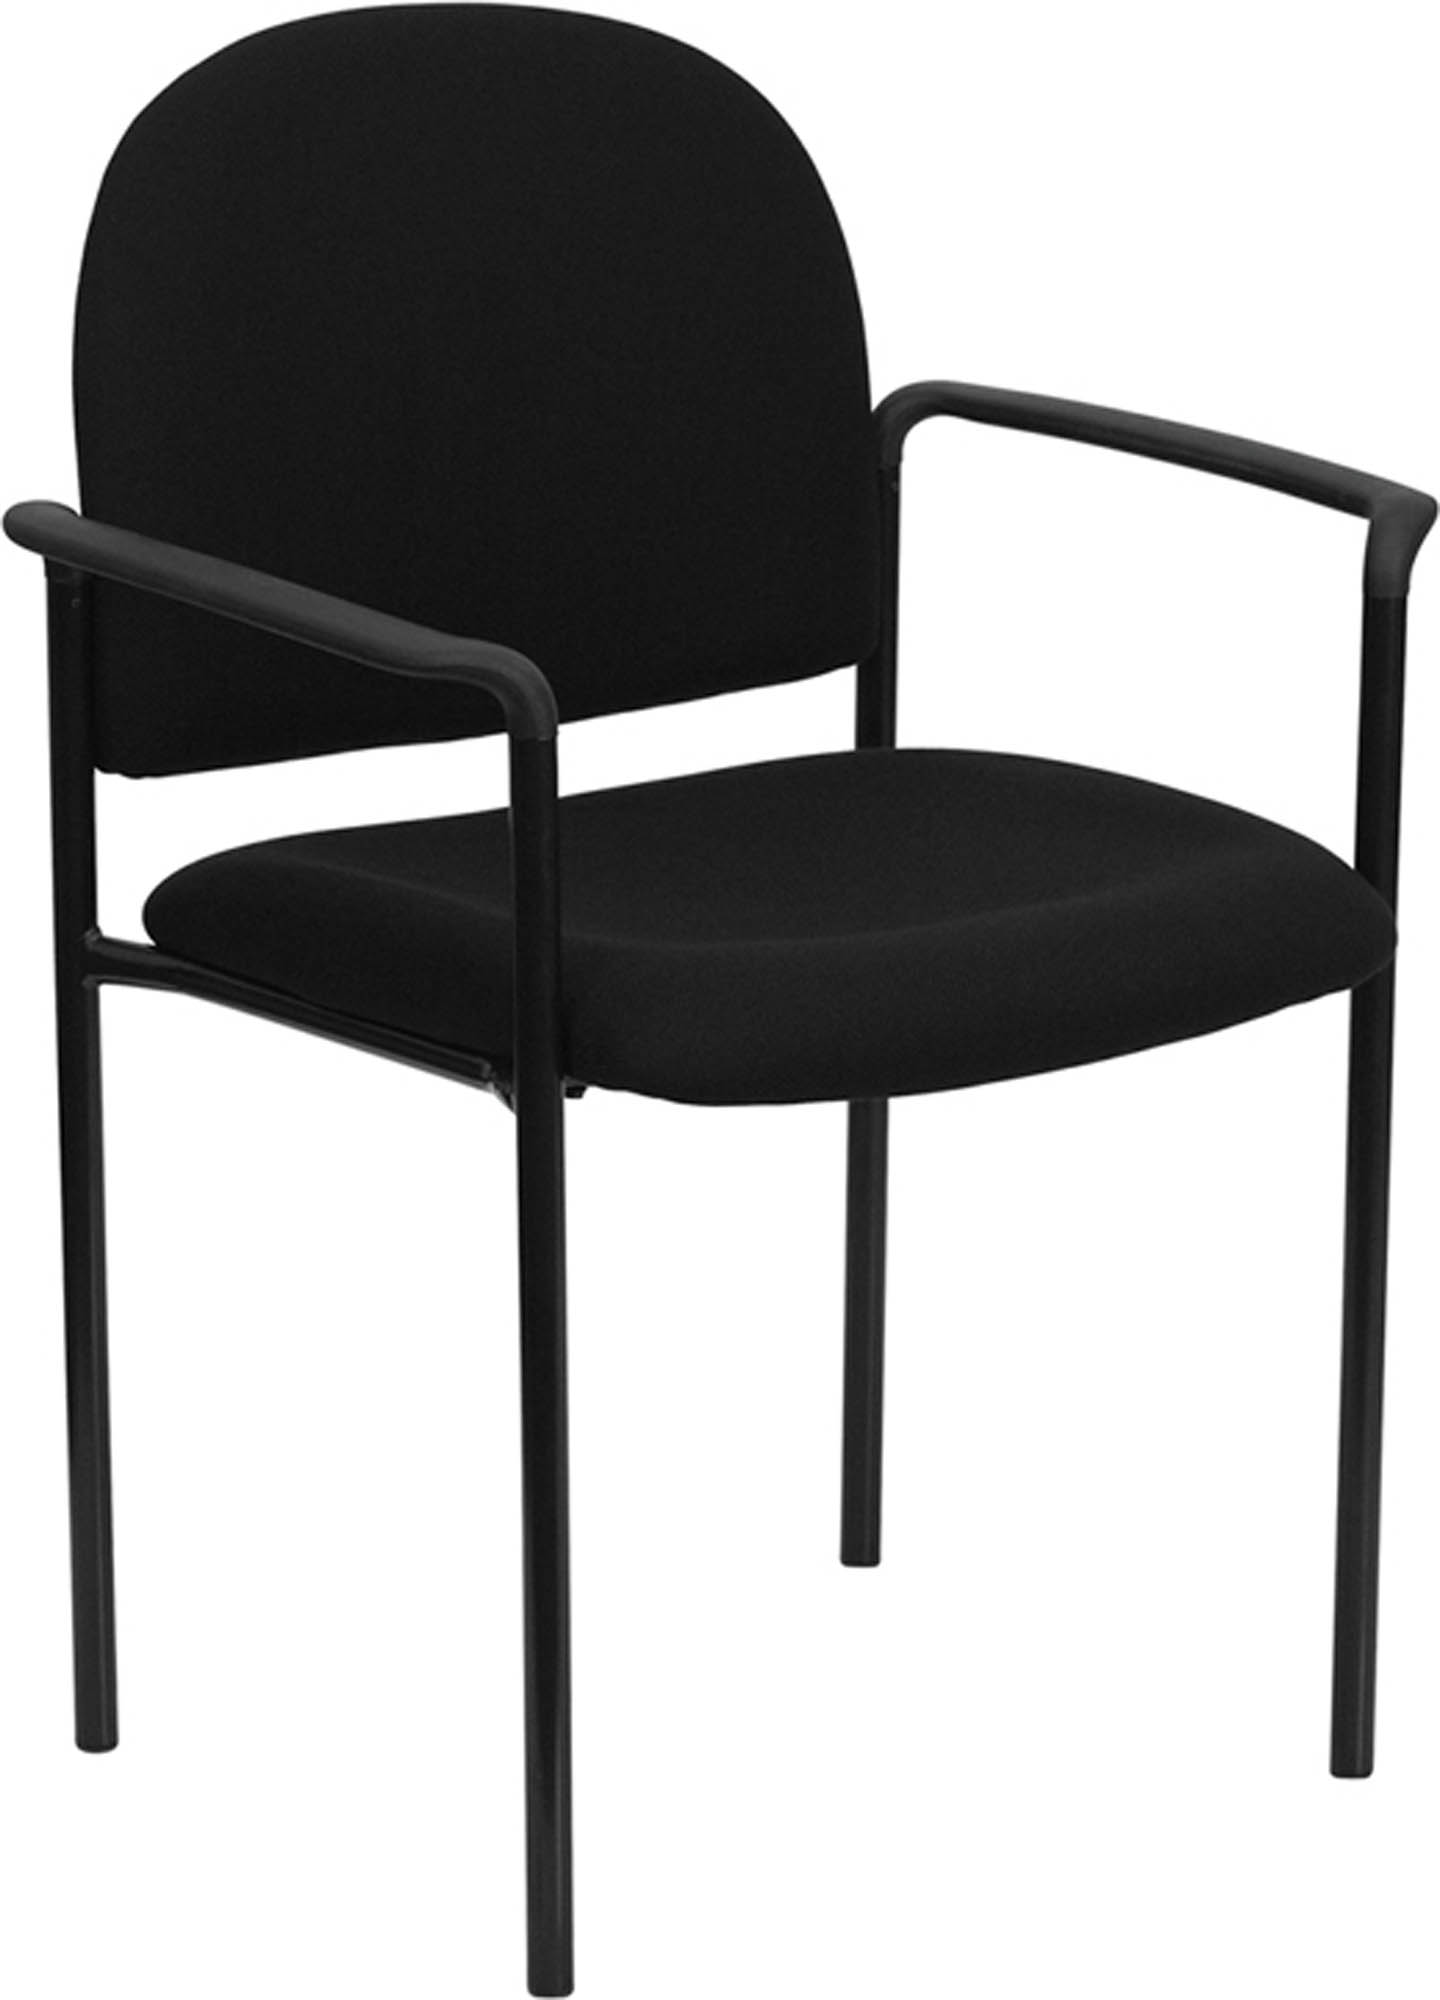 Offex Black Fabric Comfortable Stackable Steel Side Chair with Arms [BT-516-1-BK-GG]